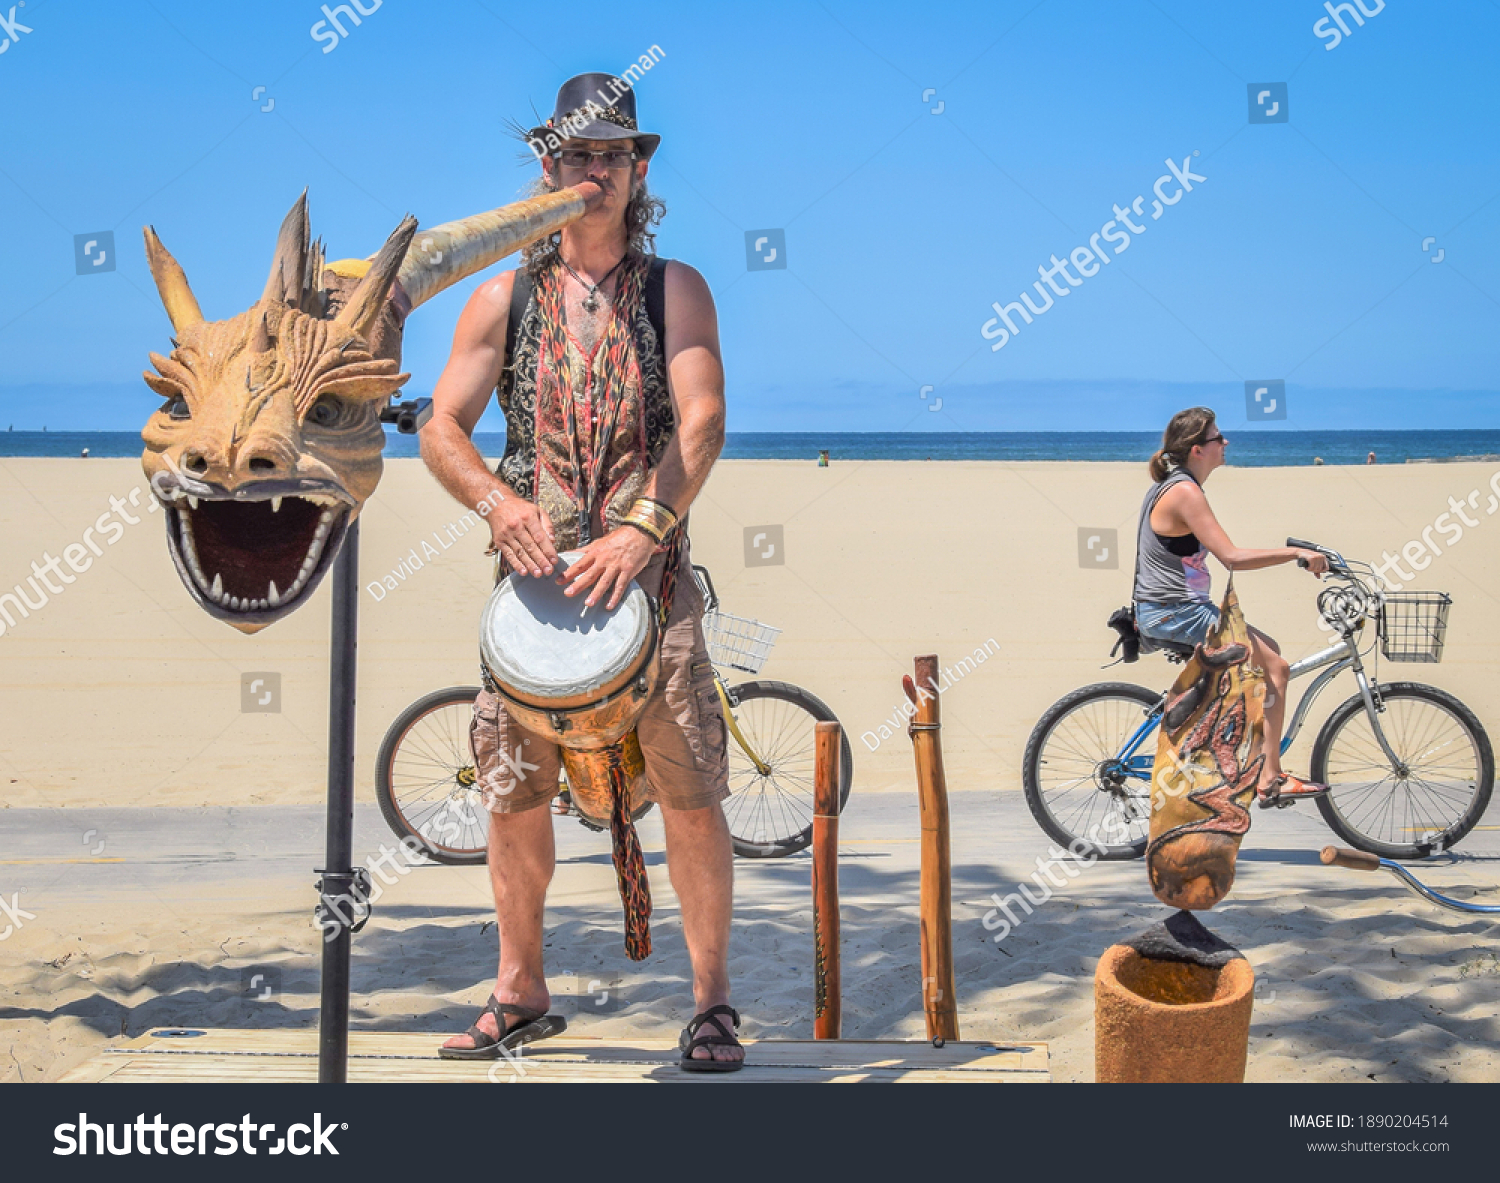 Venice Beach, California - July 11, 2015: A musician plays a dragon headed didgeridoo as a woman rides her bicycle at the Venice Beach Boardwalk.